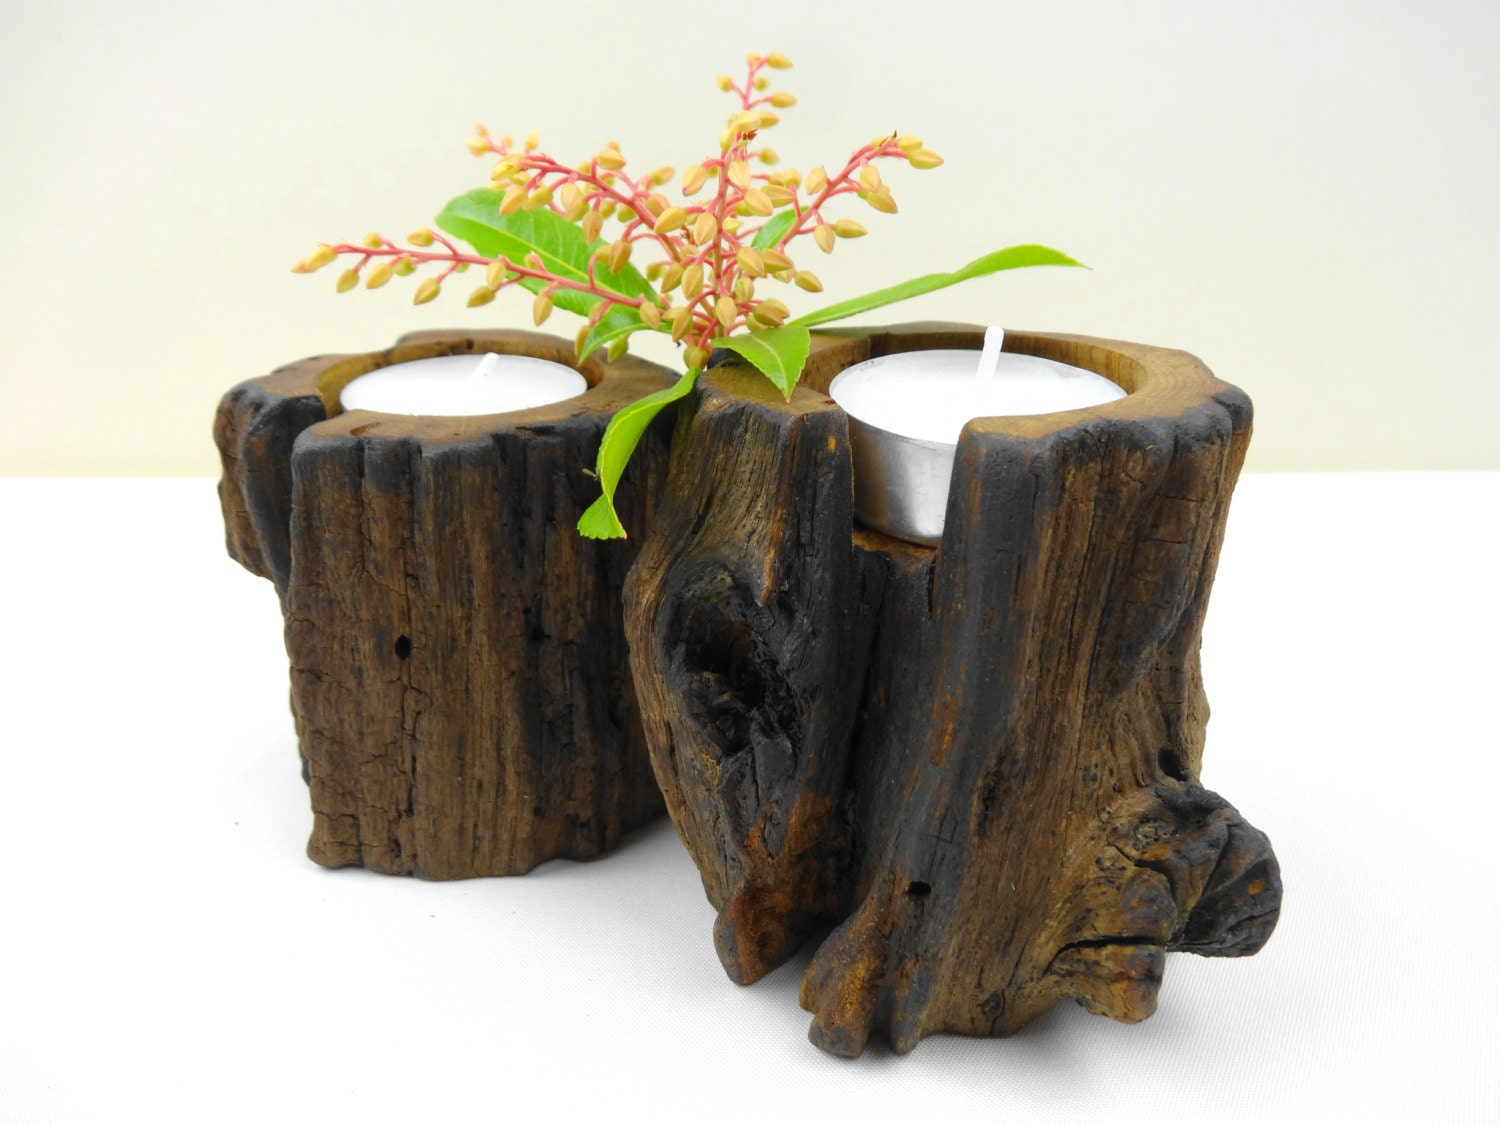 Candle holder wooden holders centerpiece rustic